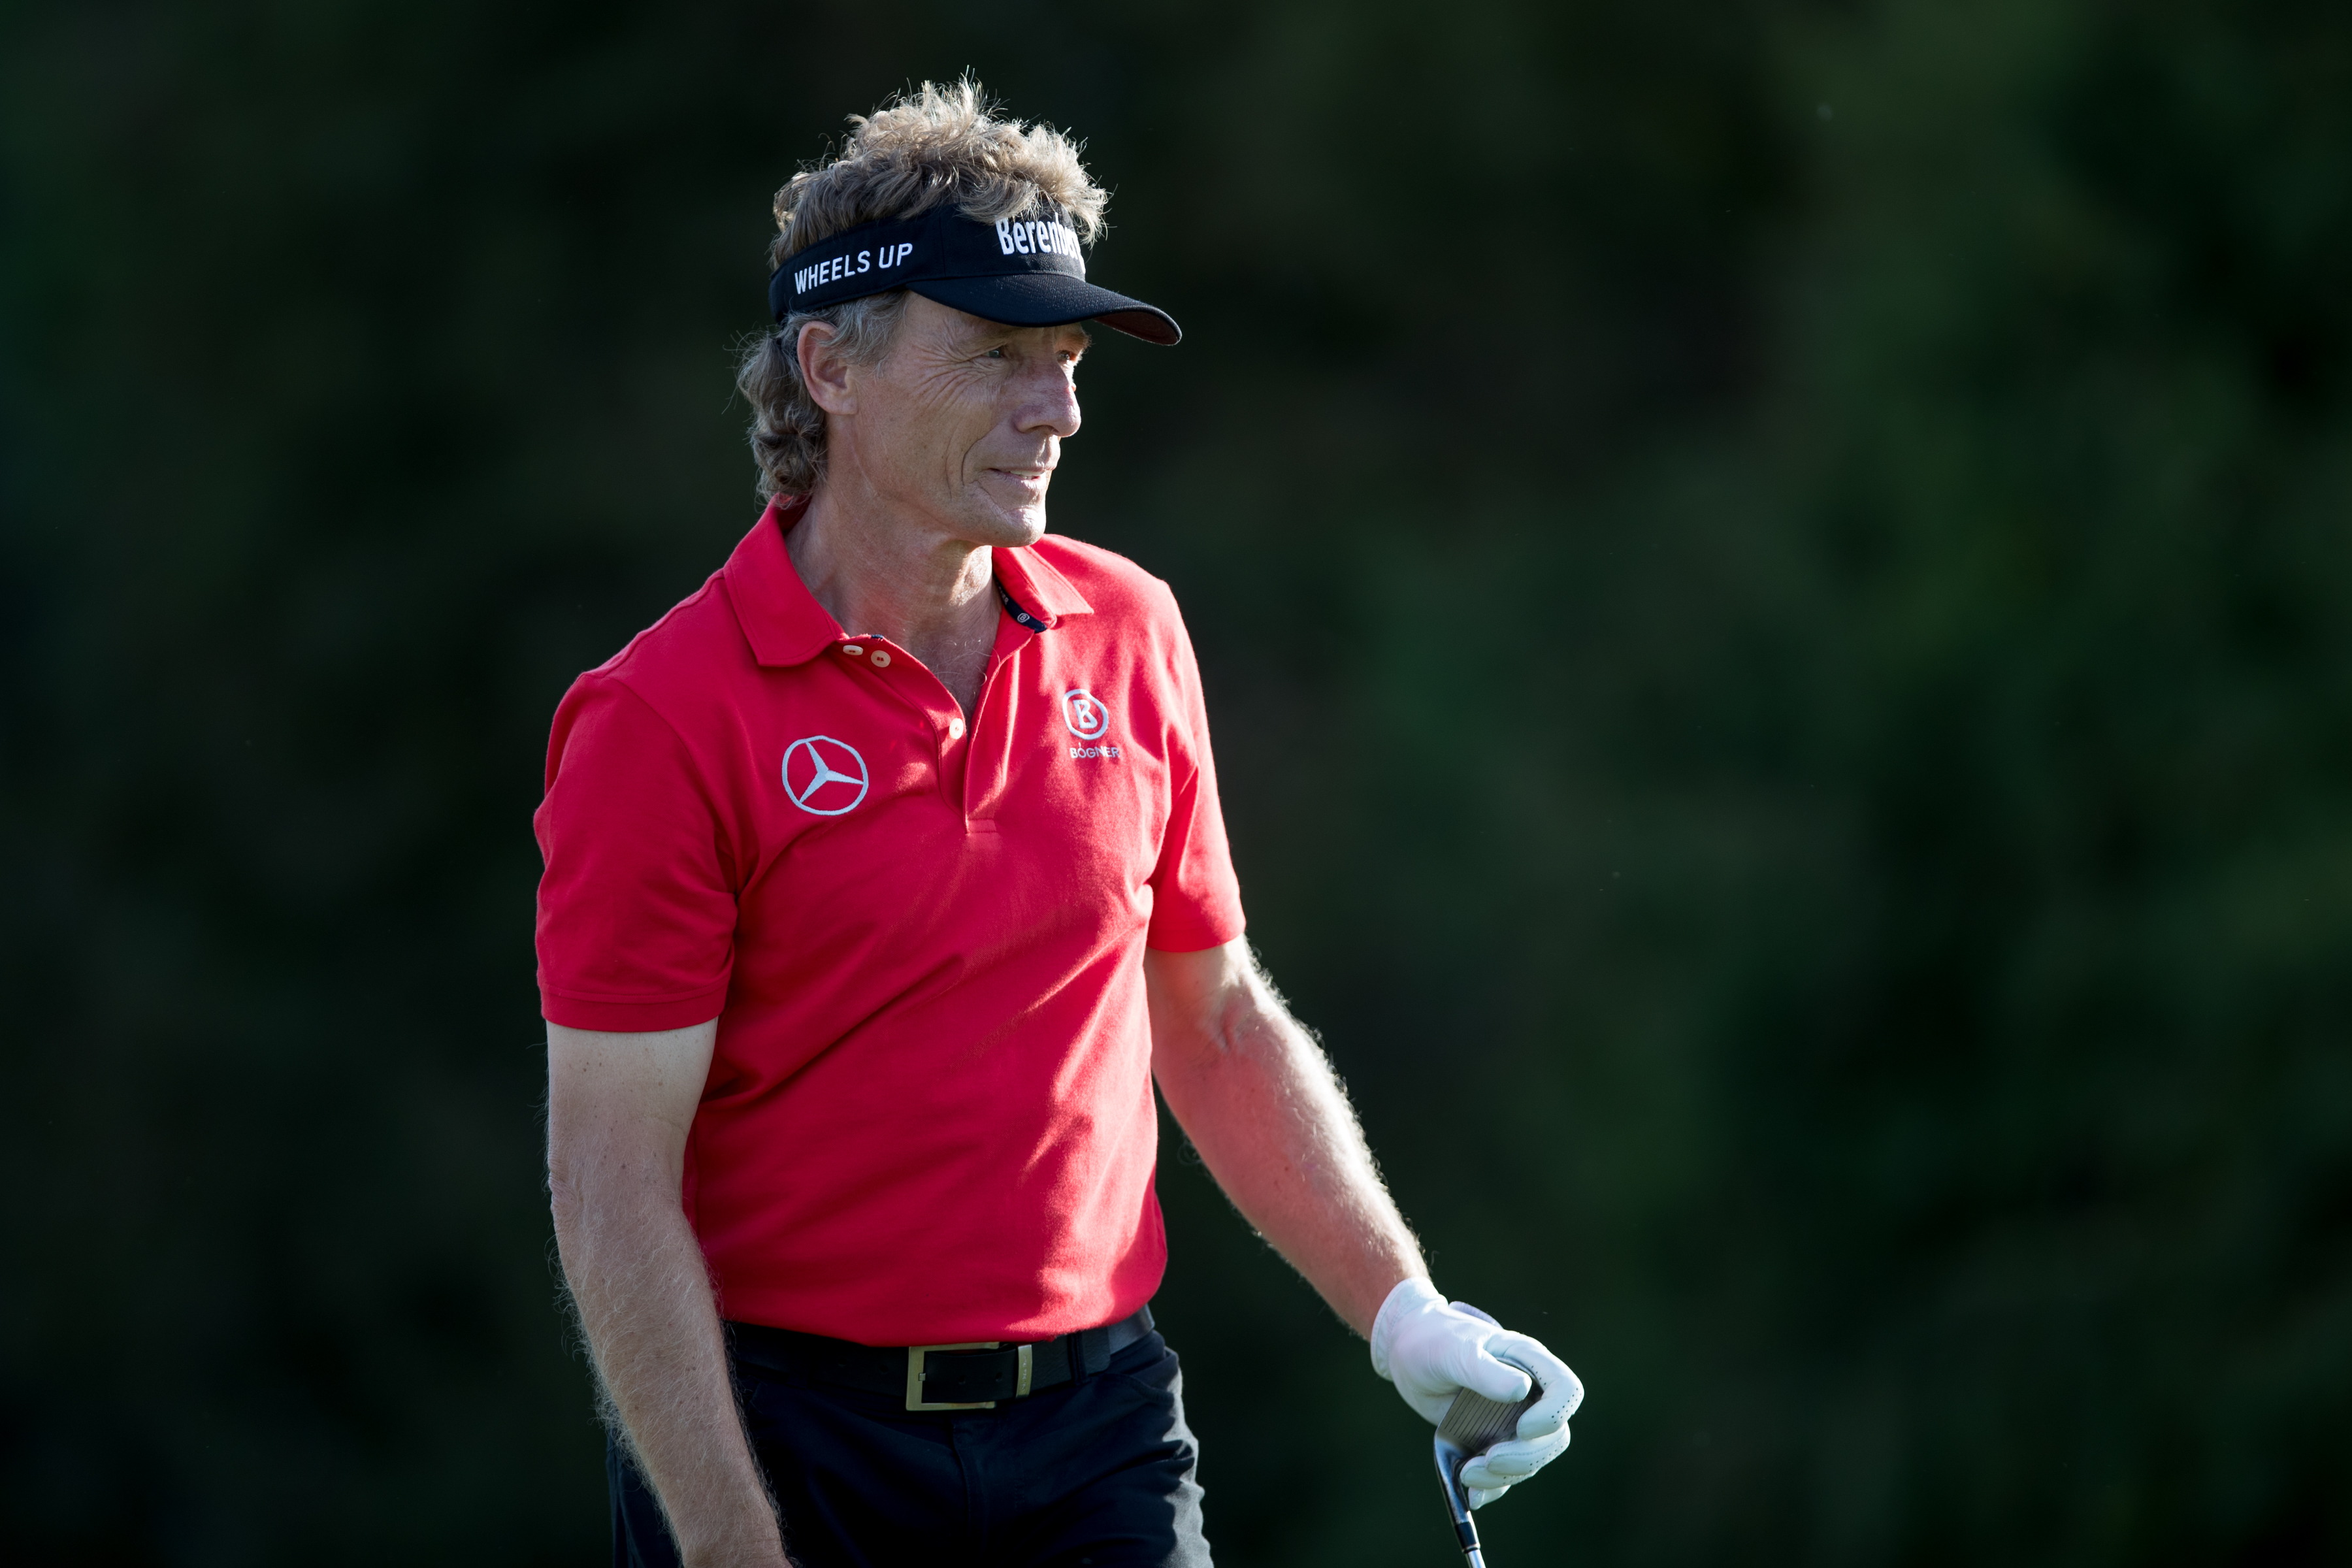 Bernhard Langer found himself mired in a political controversy last month.